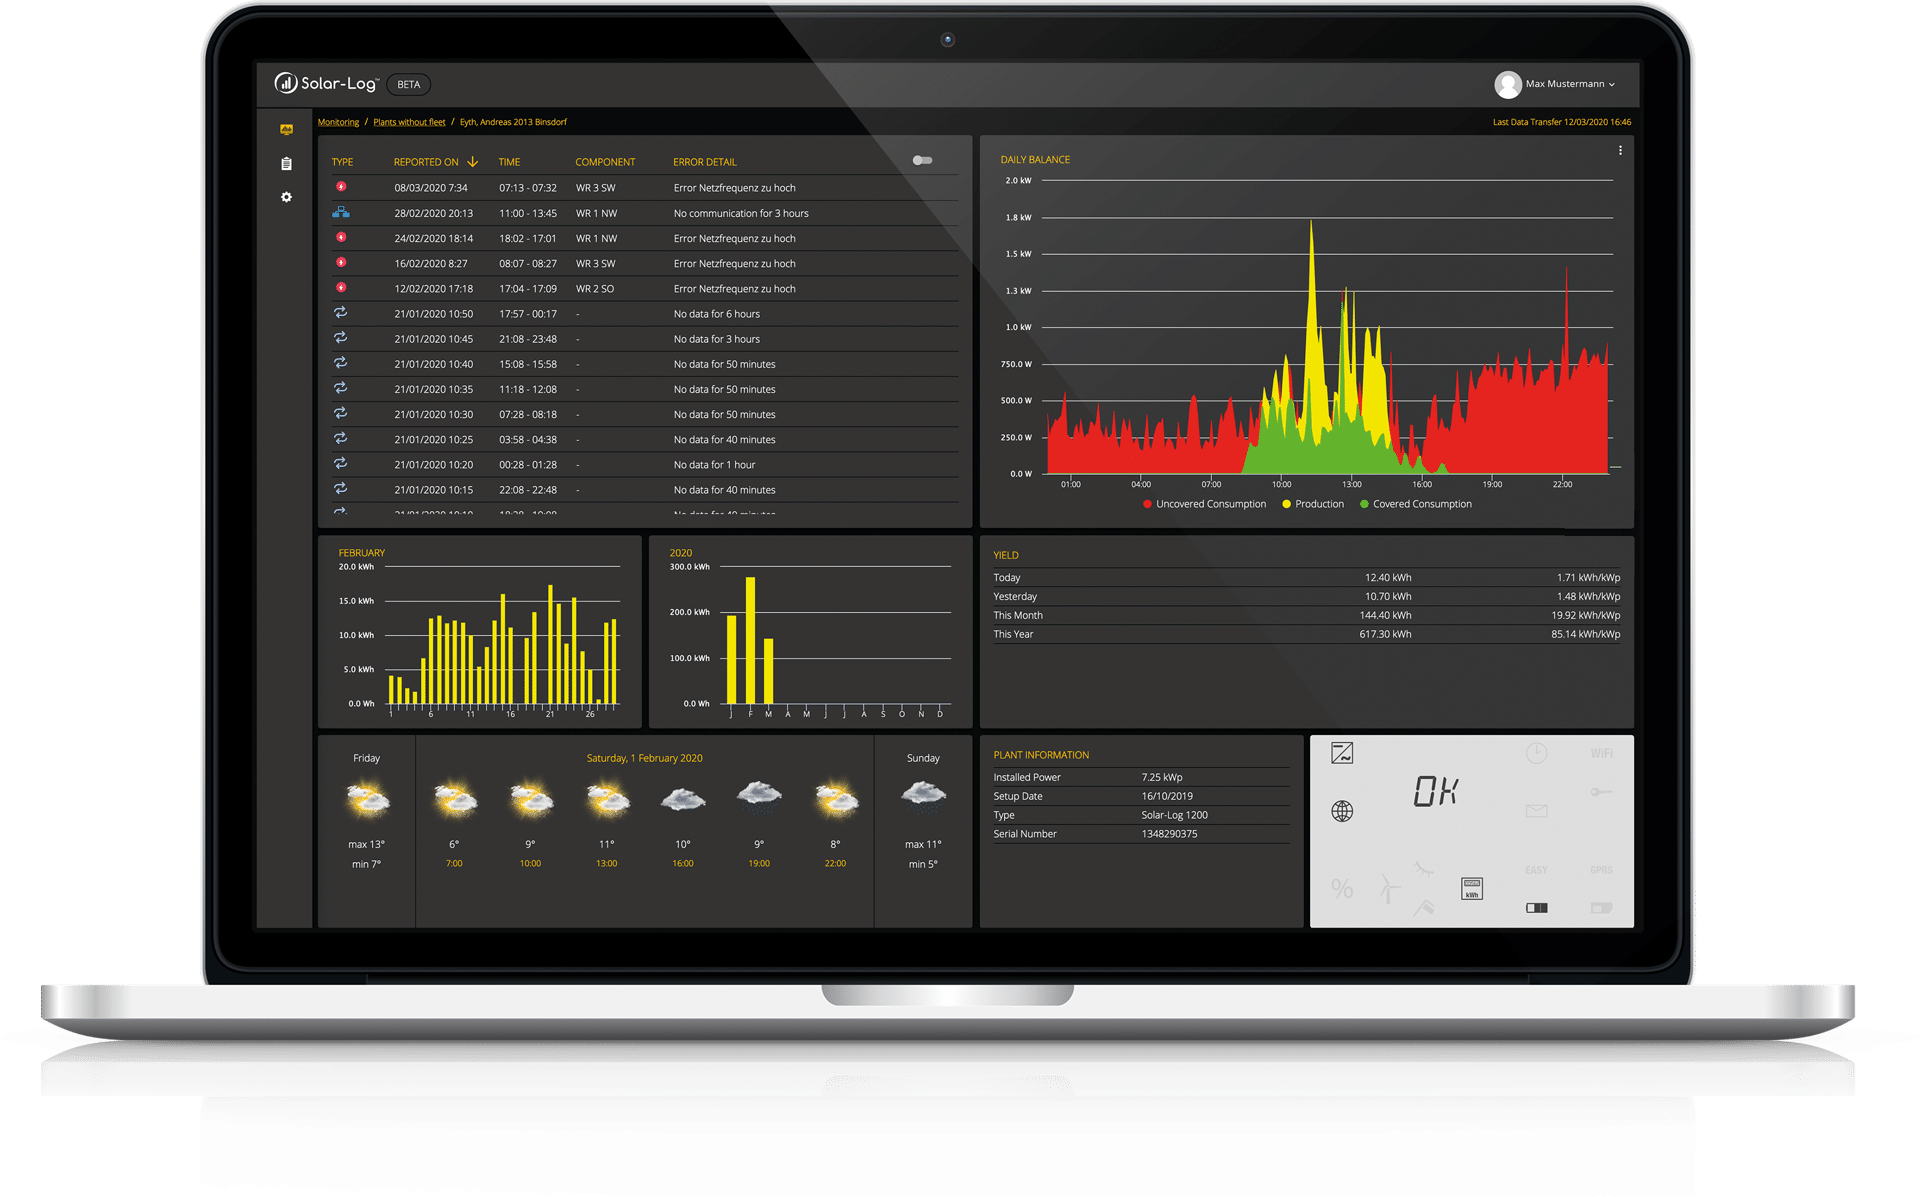 PV Power Plant Monitoring and Management System